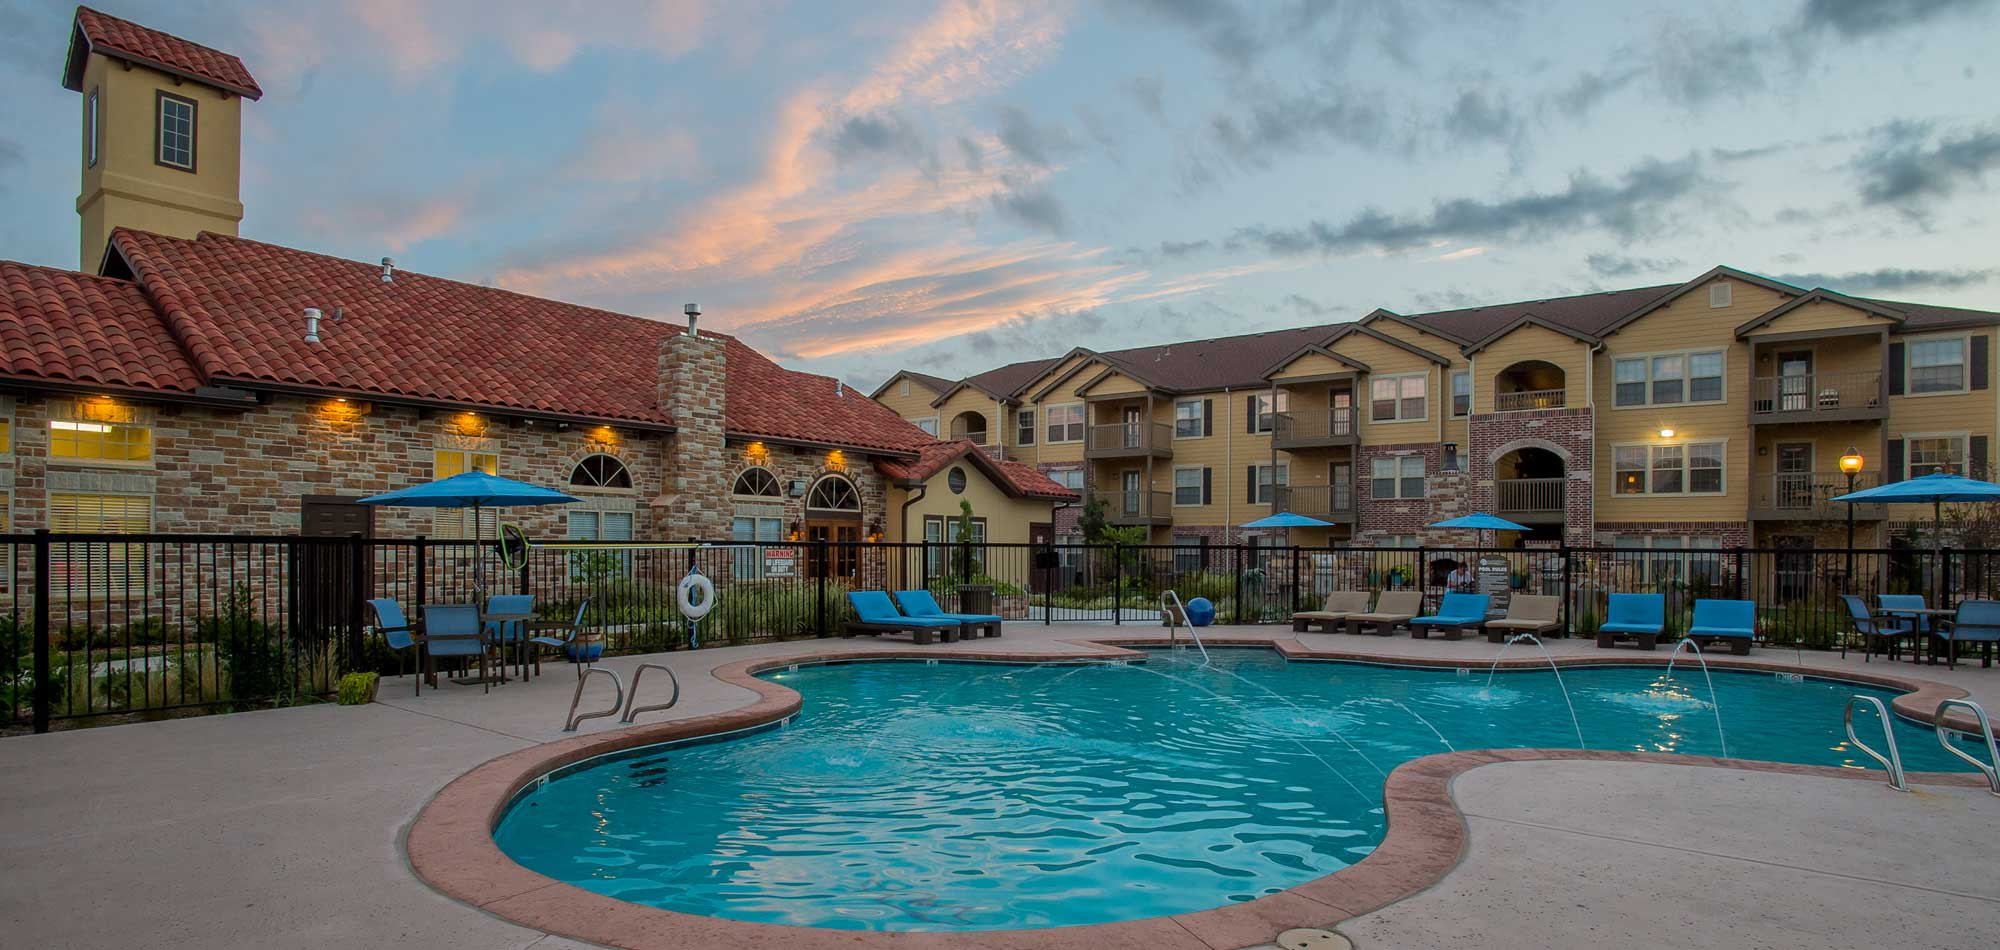 The sparkling swimming pool at our apartments in Wichita will enchant you